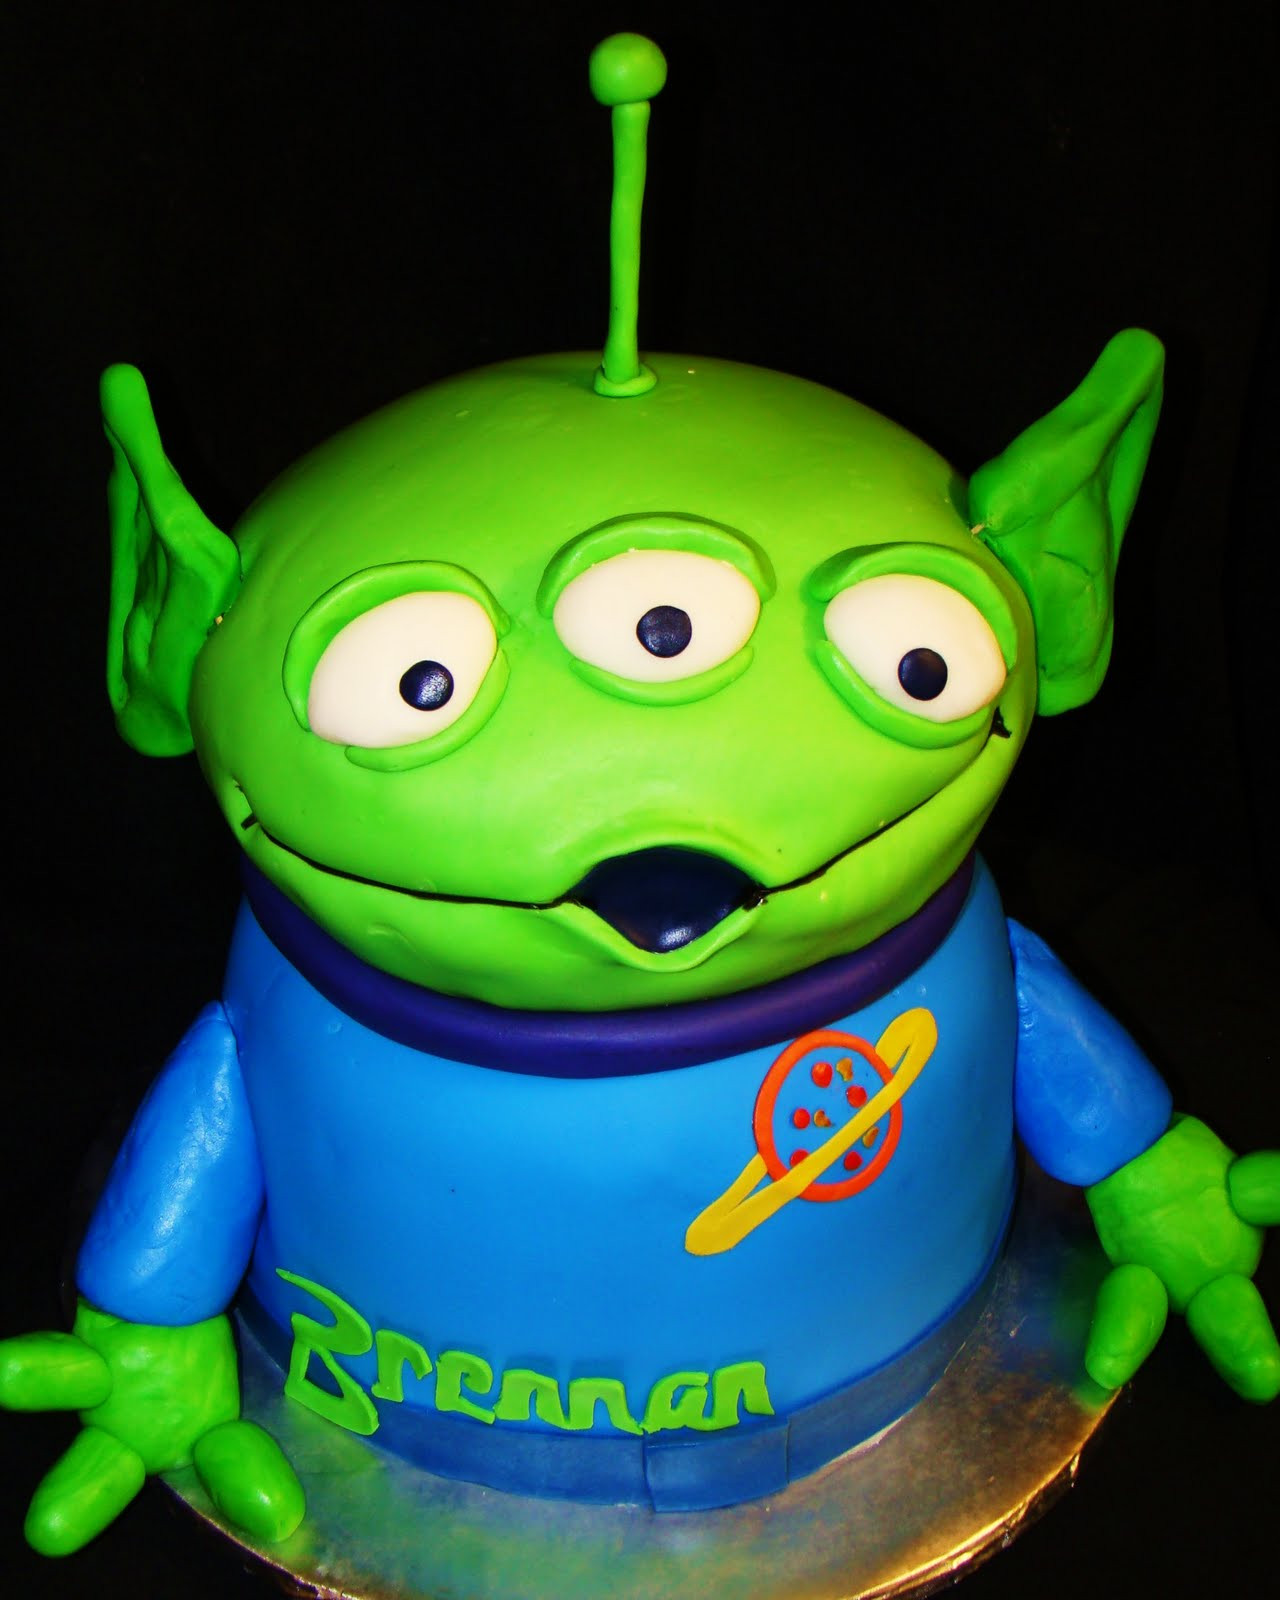 Layers of Love: Toy Story Alien Cake